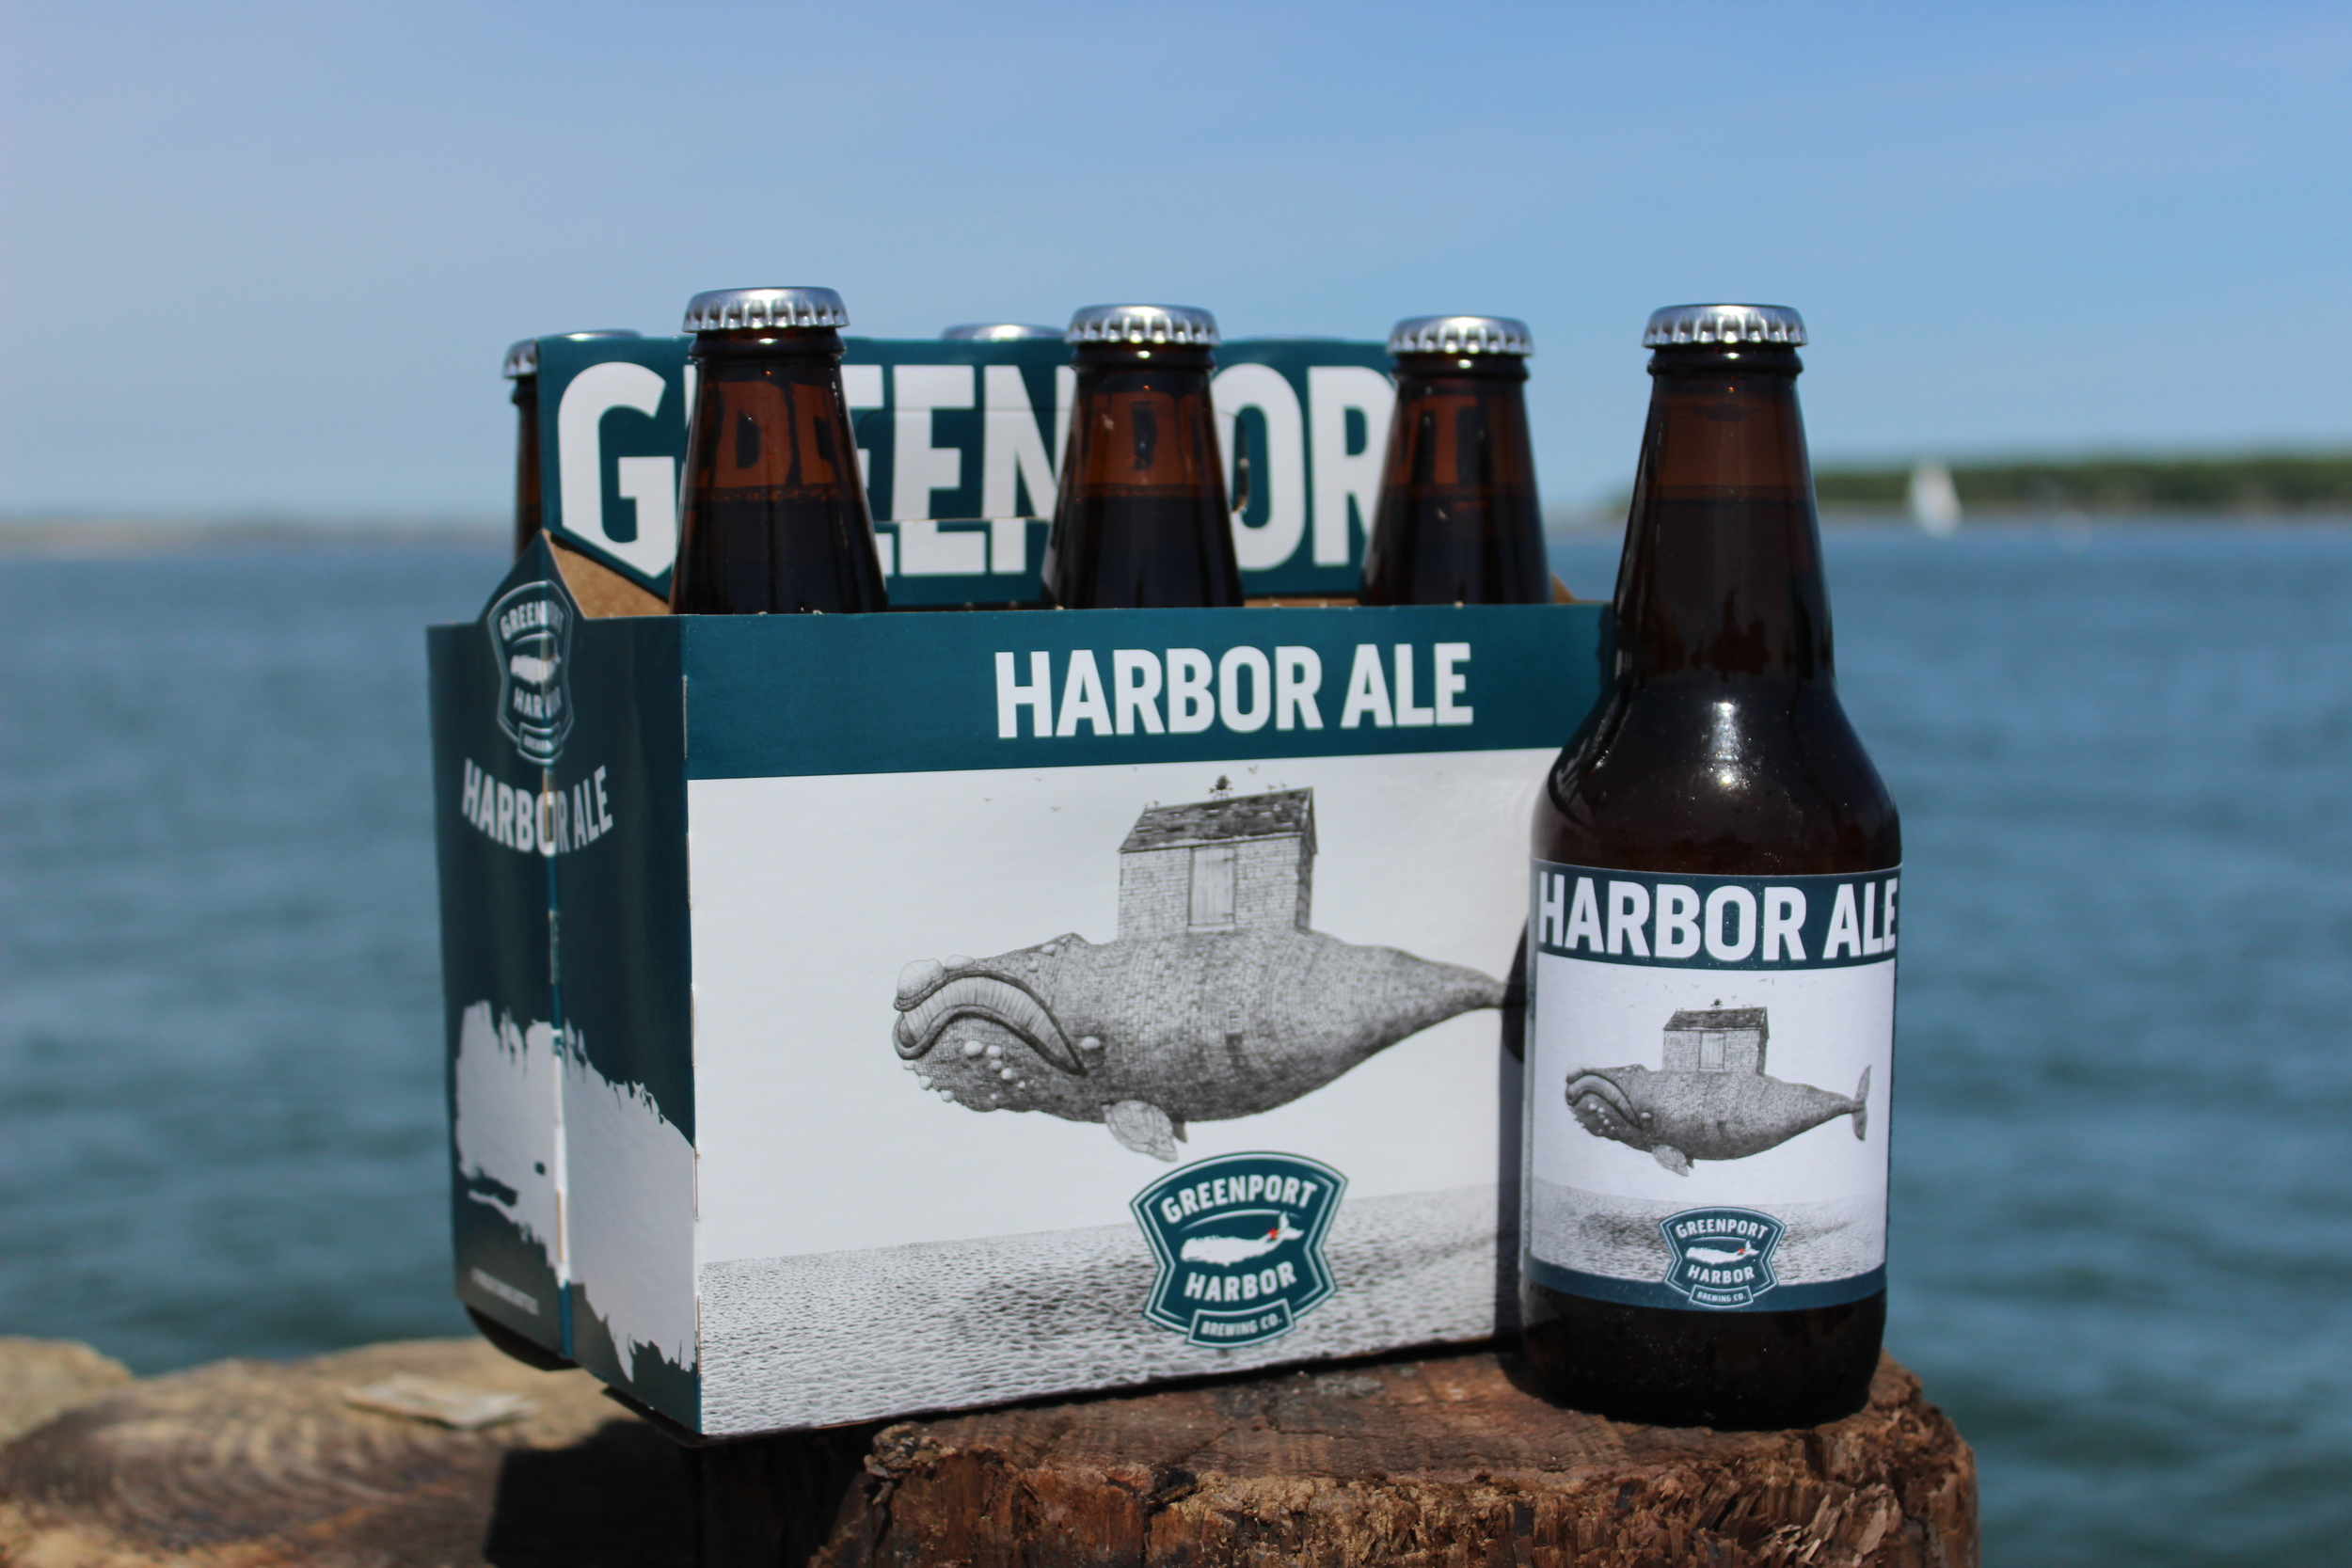 Harbor Ale